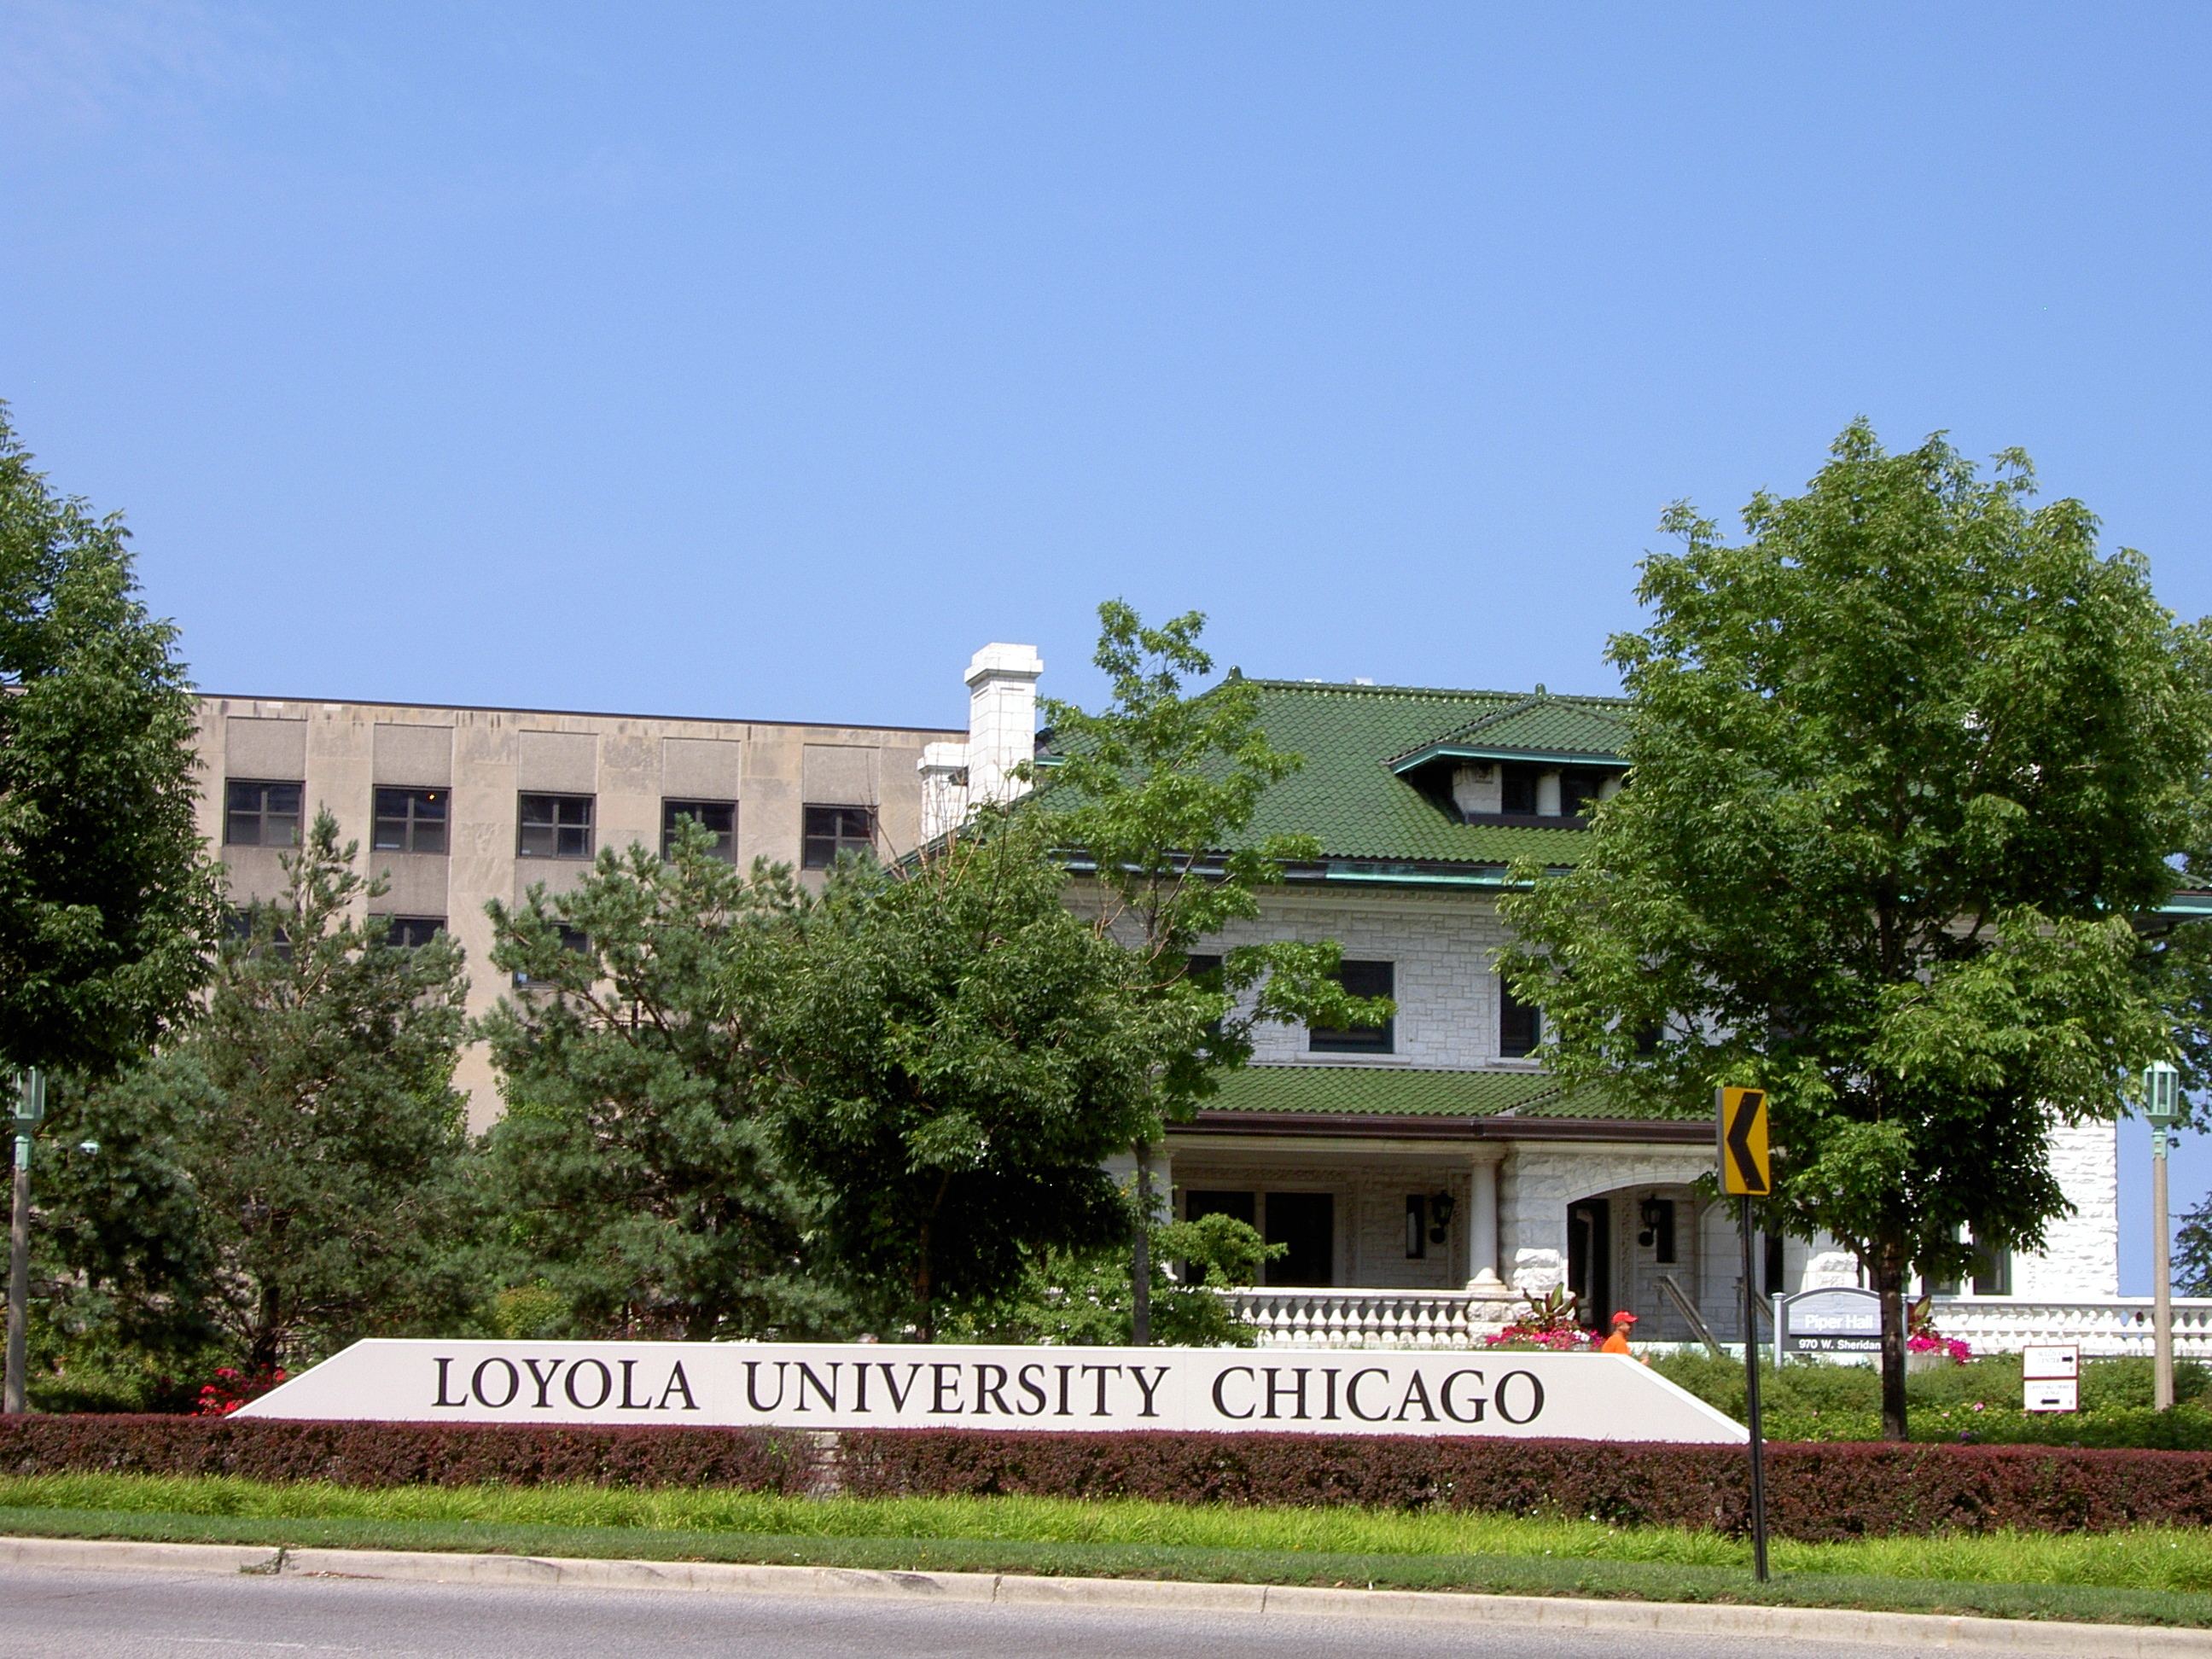 Description loyola university chicago sign on sheridan ave jpg